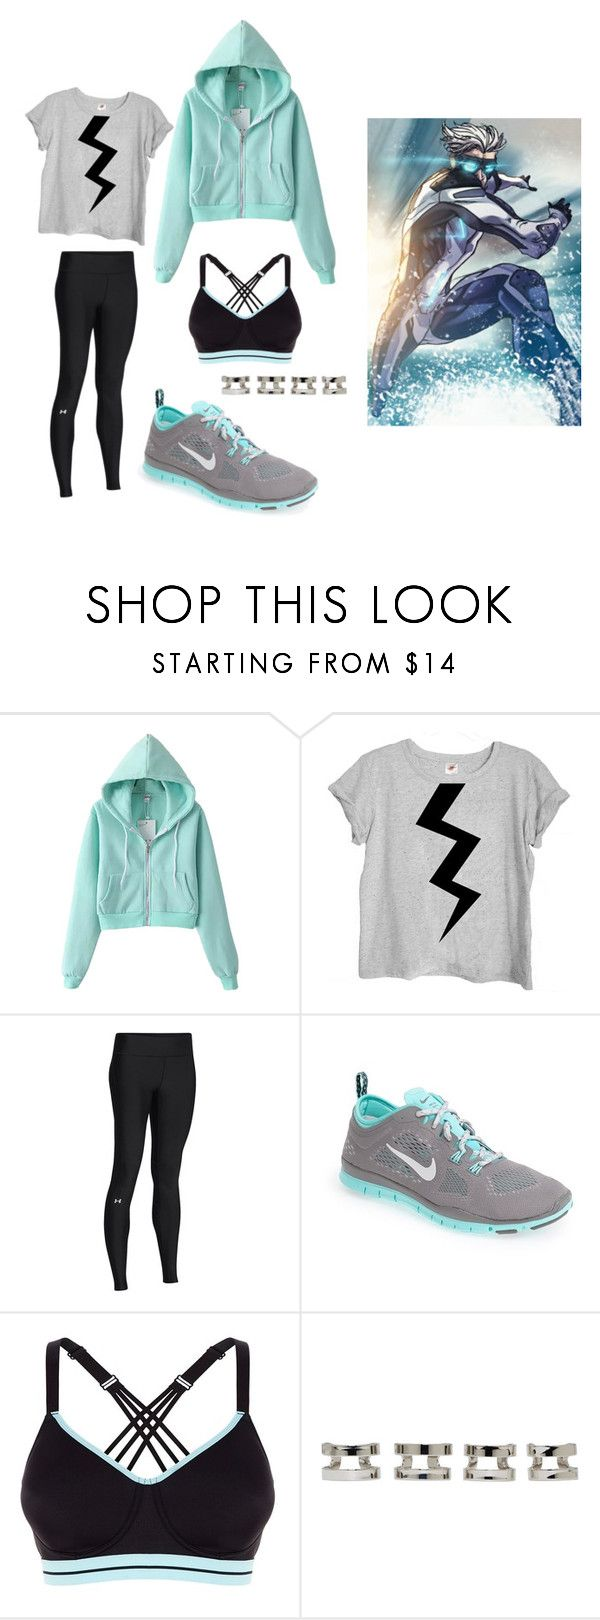 """Pietro Maximoff - Quicksilver (comics)"" by cynical-bonbons ❤ liked on Polyvore featuring мода, Under Armour, NIKE, Maison Margiela, marvel, athletic, CasualCosplay и quicksilver"